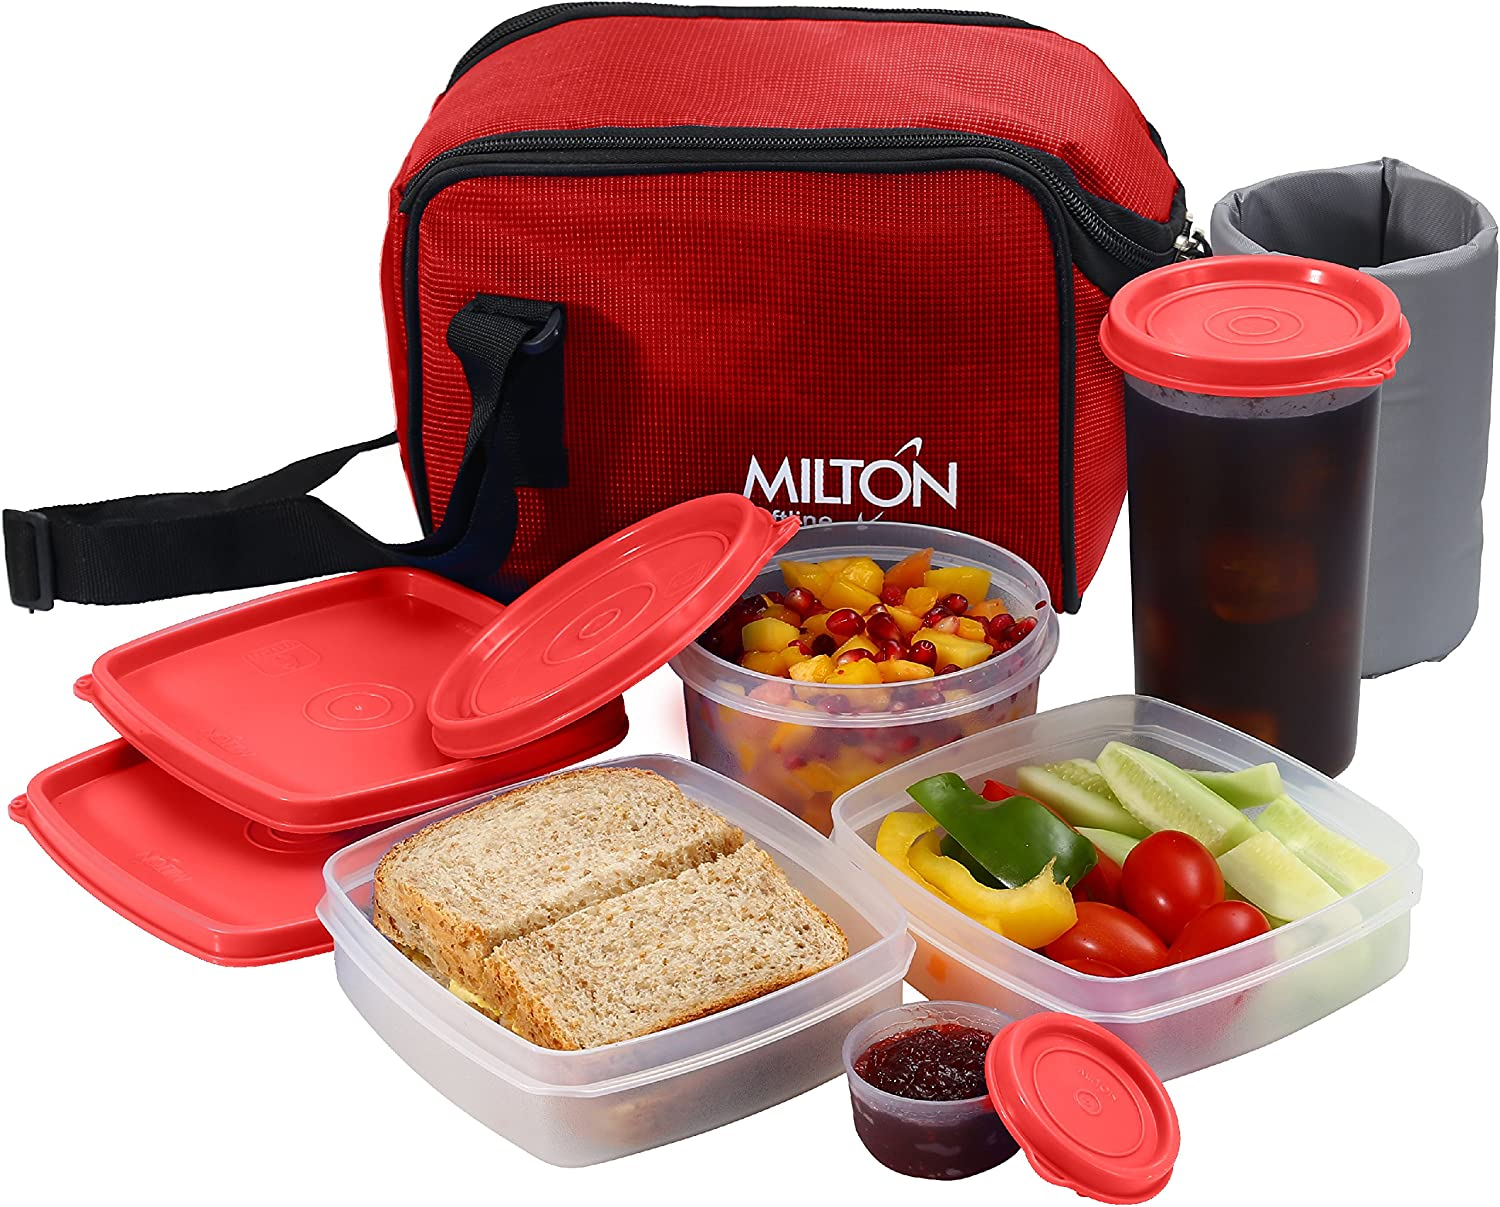 Insulated Lunch Bag Box Kit, Milton 5 Pc Set, Adults Men Women, Leakproof Airtight Containers Cooler Tote with Adjustable Shoulder Strap for Work and Travel - Red